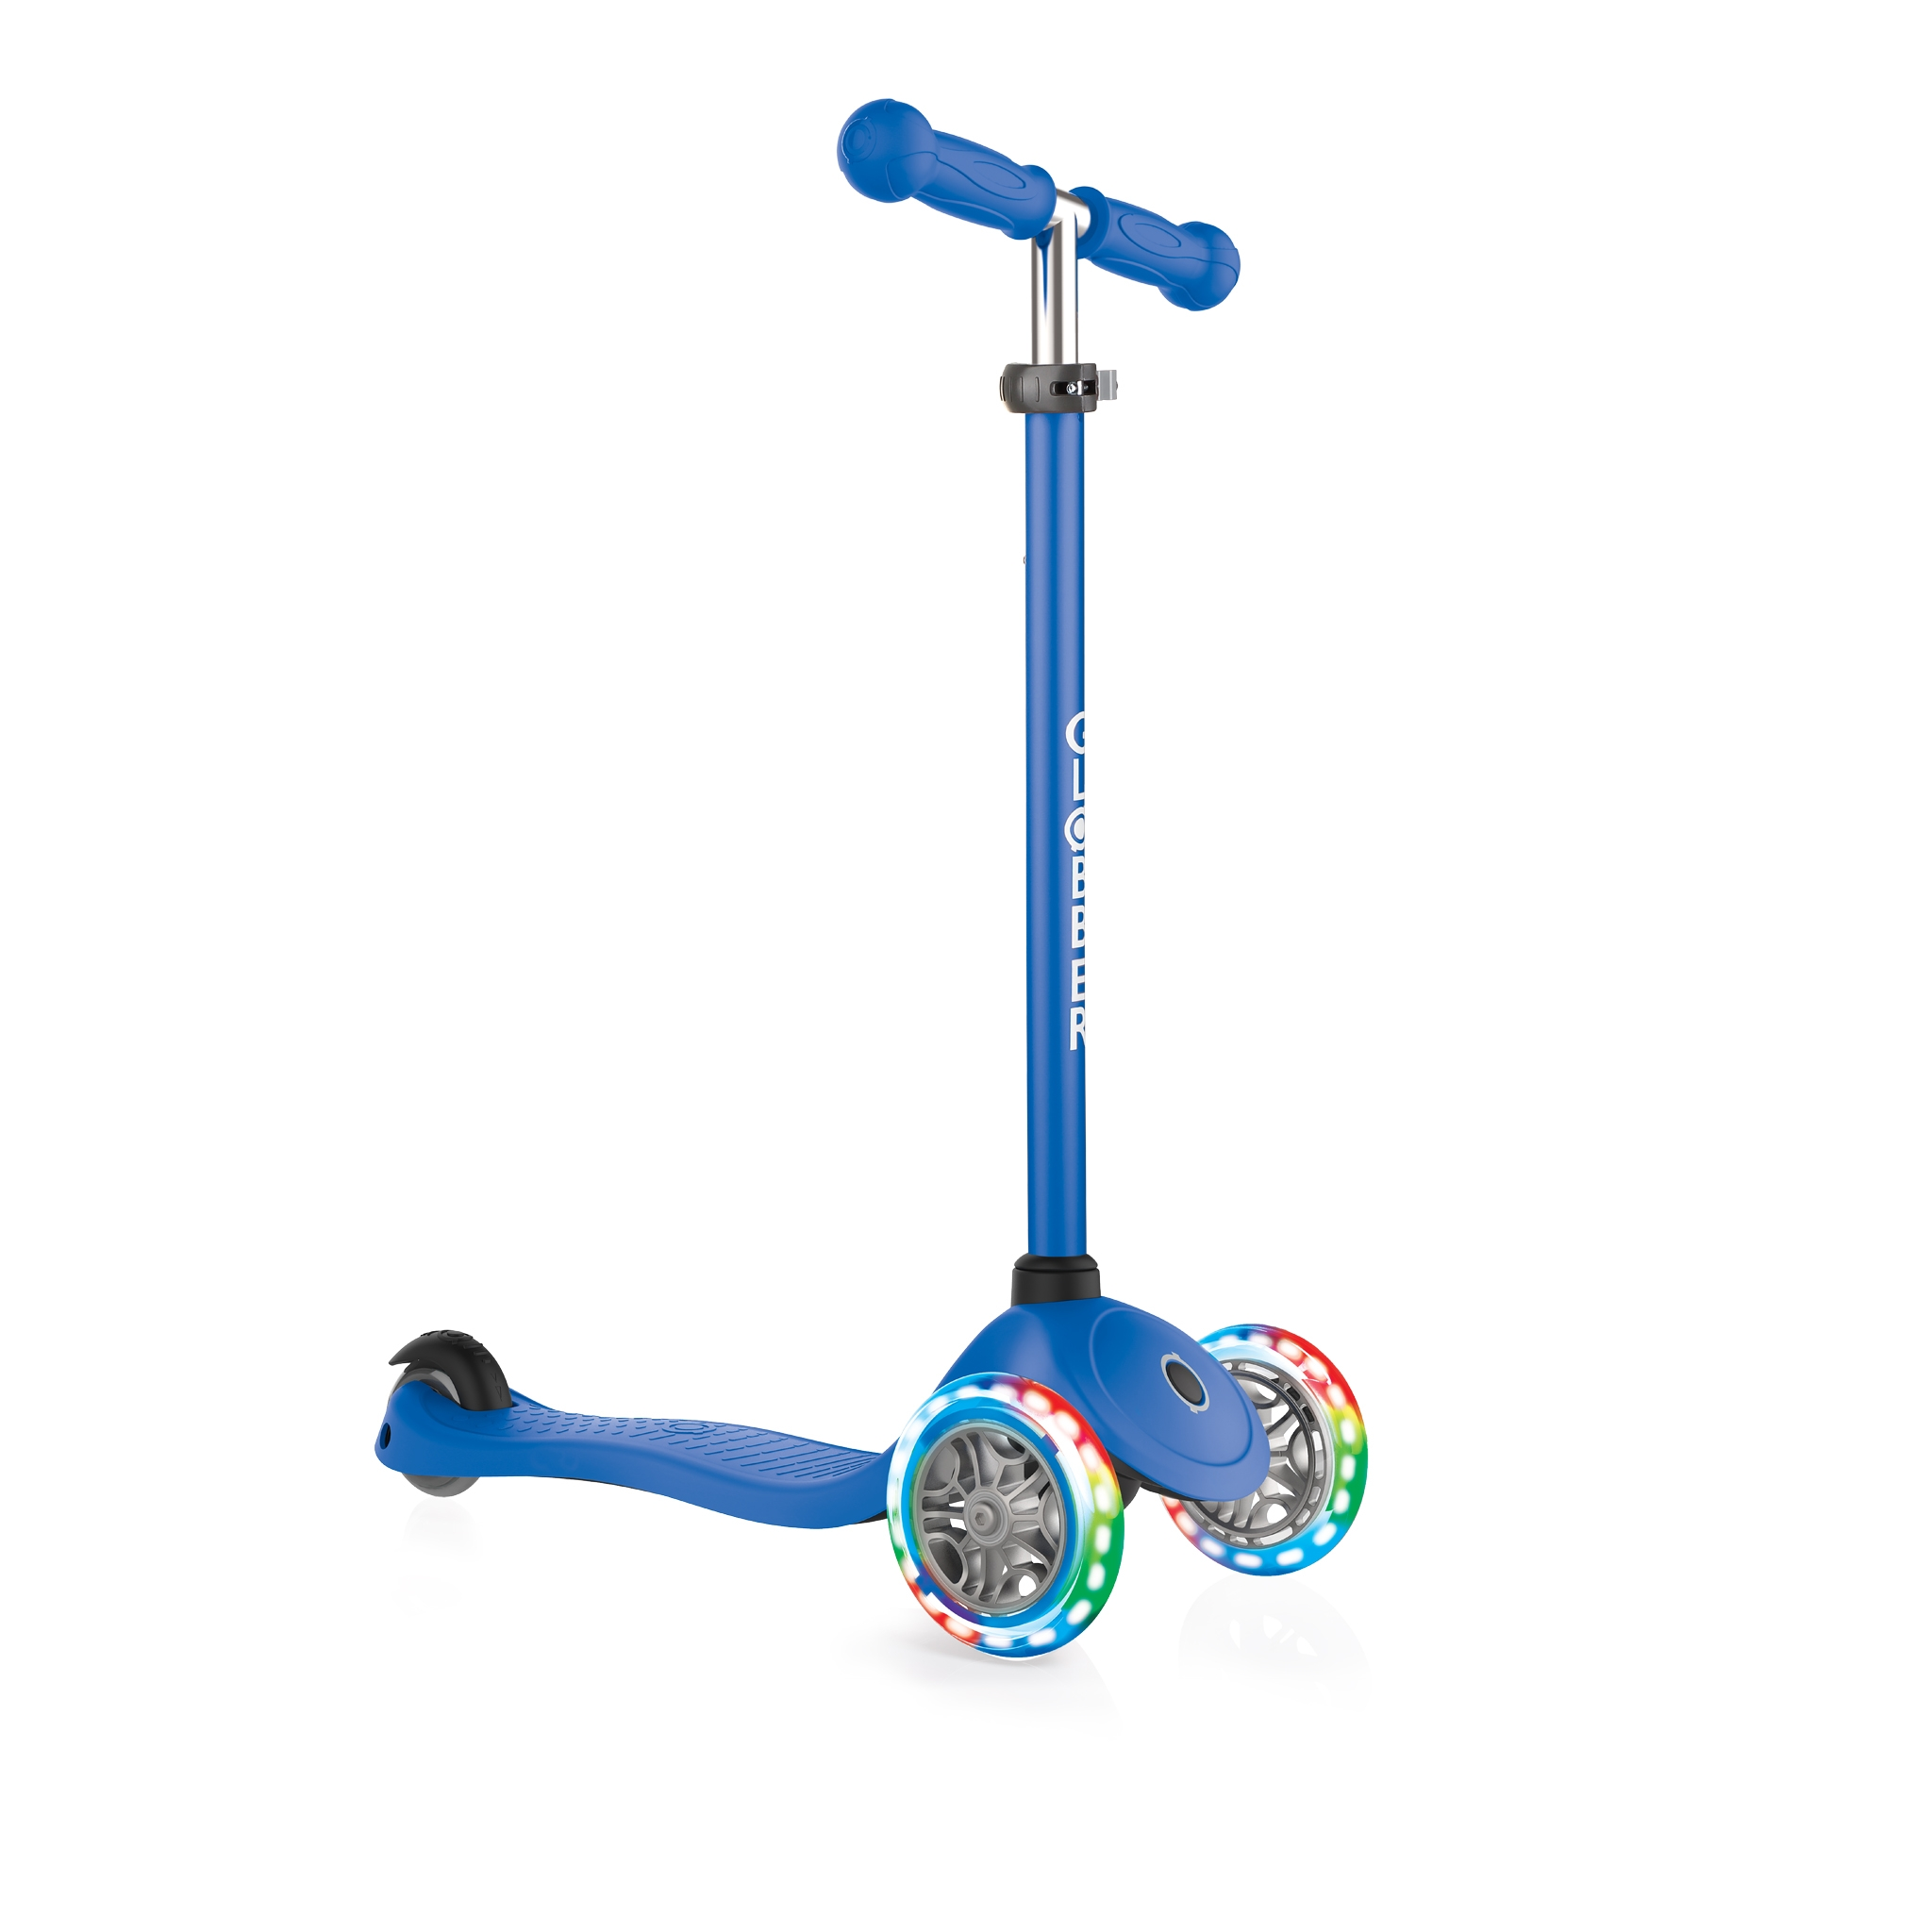 PRIMO-LIGHTS-3-wheel-scooter-for-kids-aged-3-and-above_navy-blue